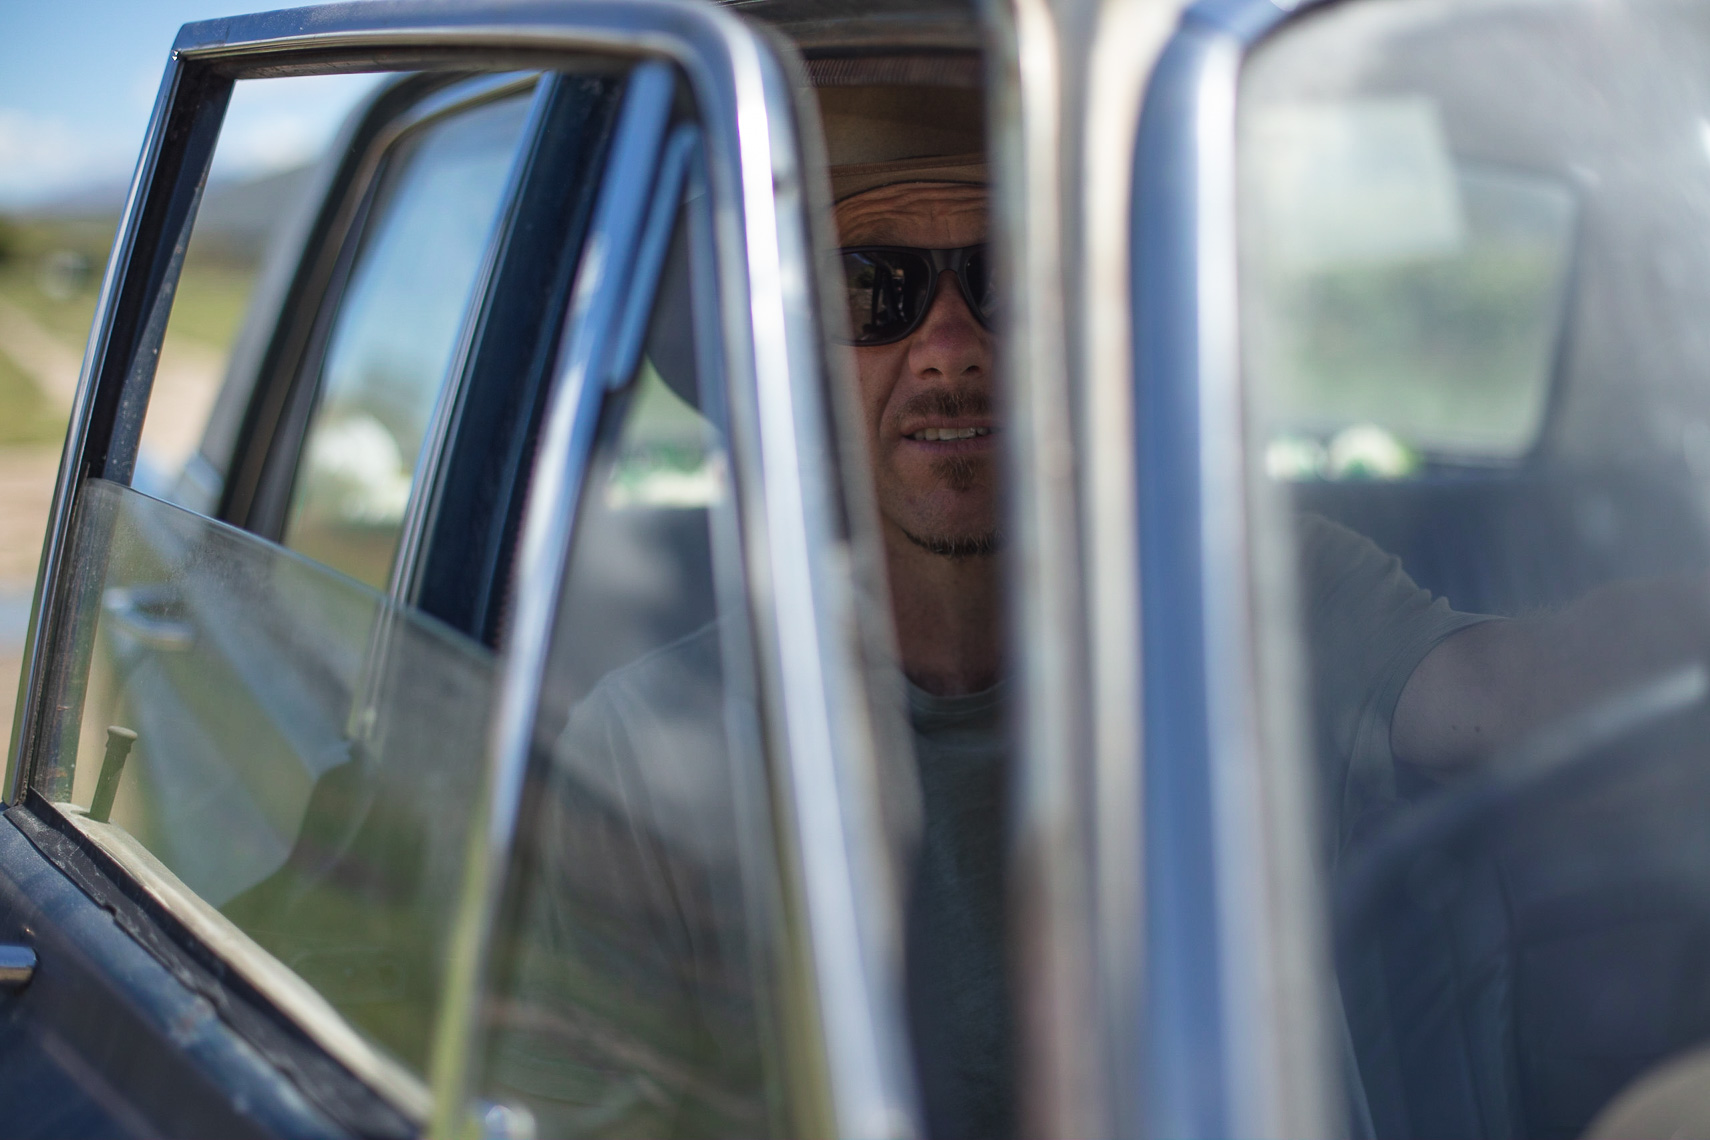 Man smiling while sitting in drivers seat of his vintage ford falcon by Paul Green Photographer